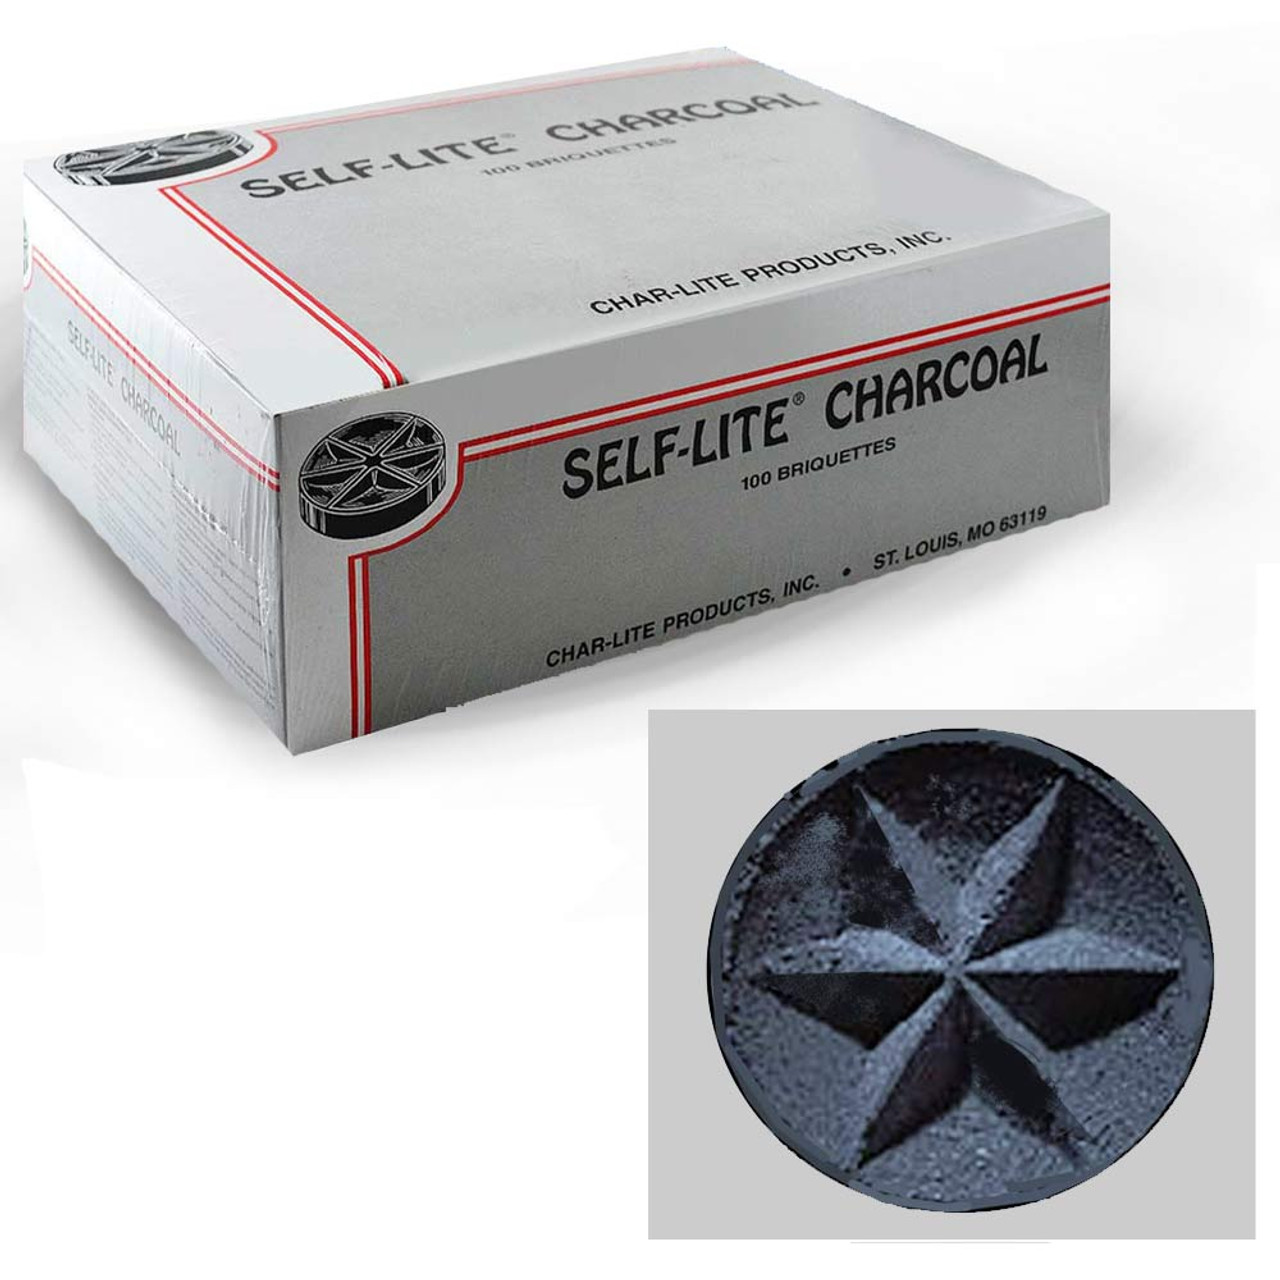 Self-Lite Charcoal for Incense 100/Box